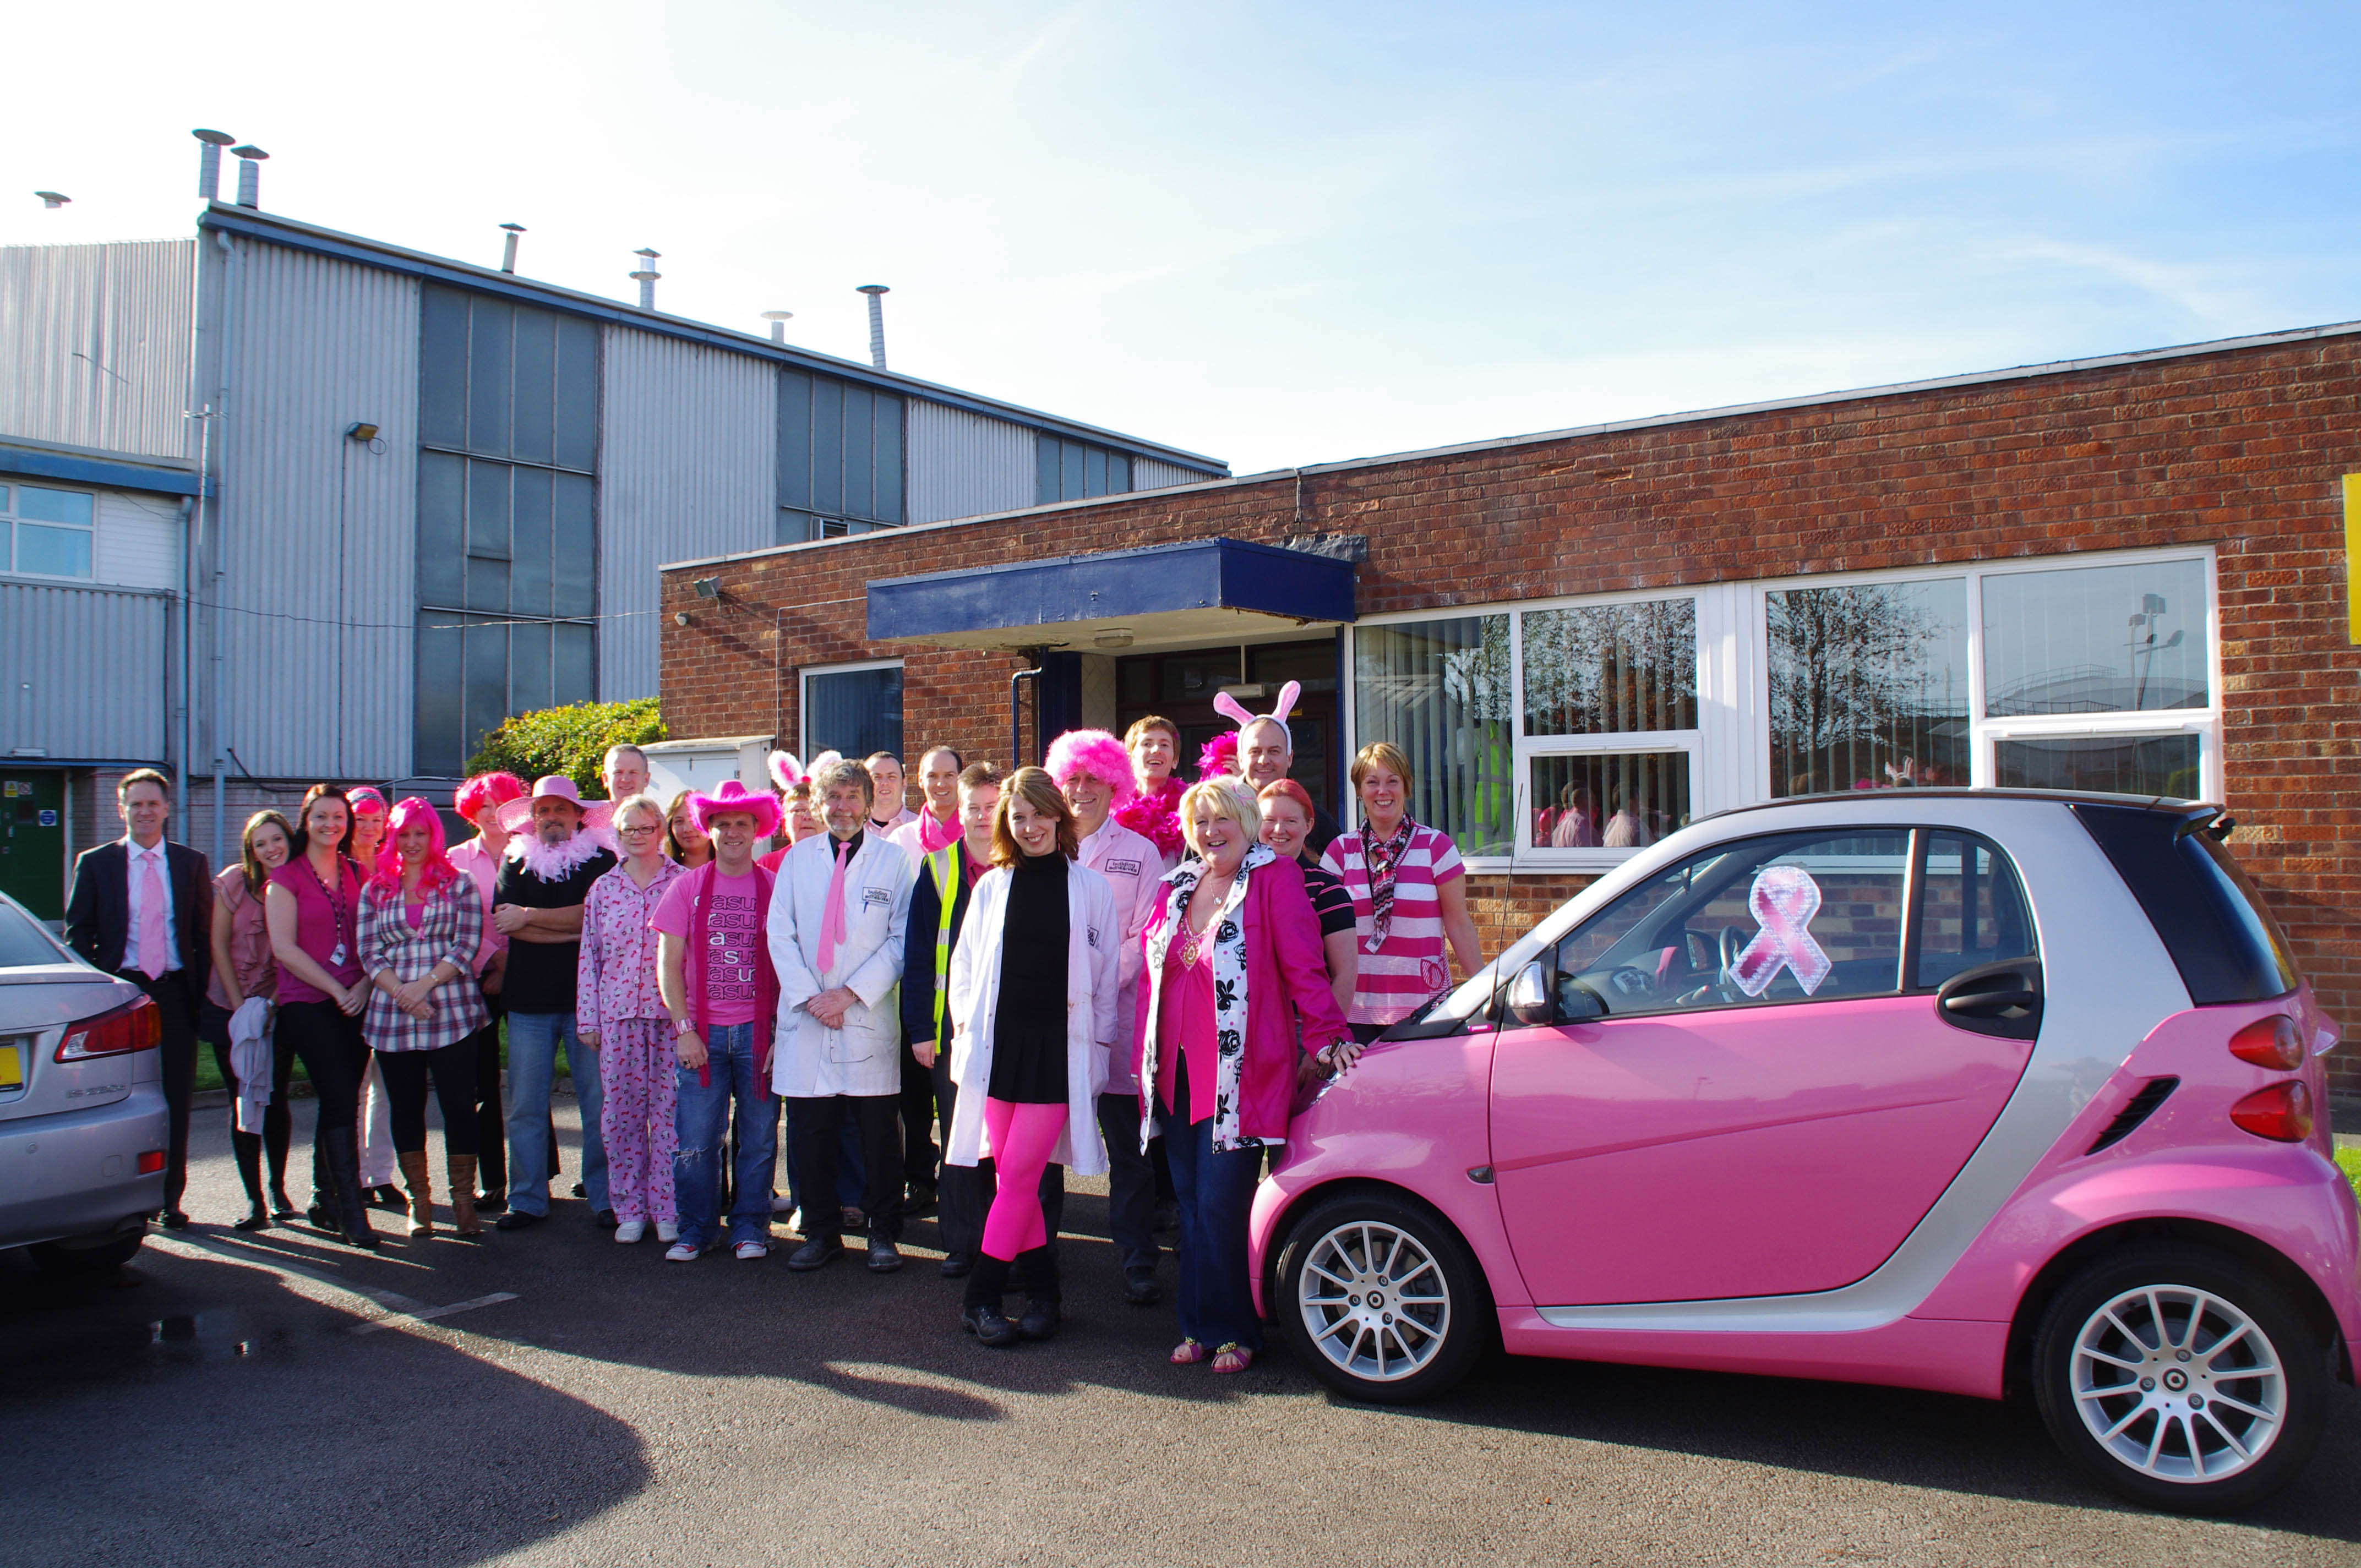 Building Adhesives raises £410 for Breast Cancer Care